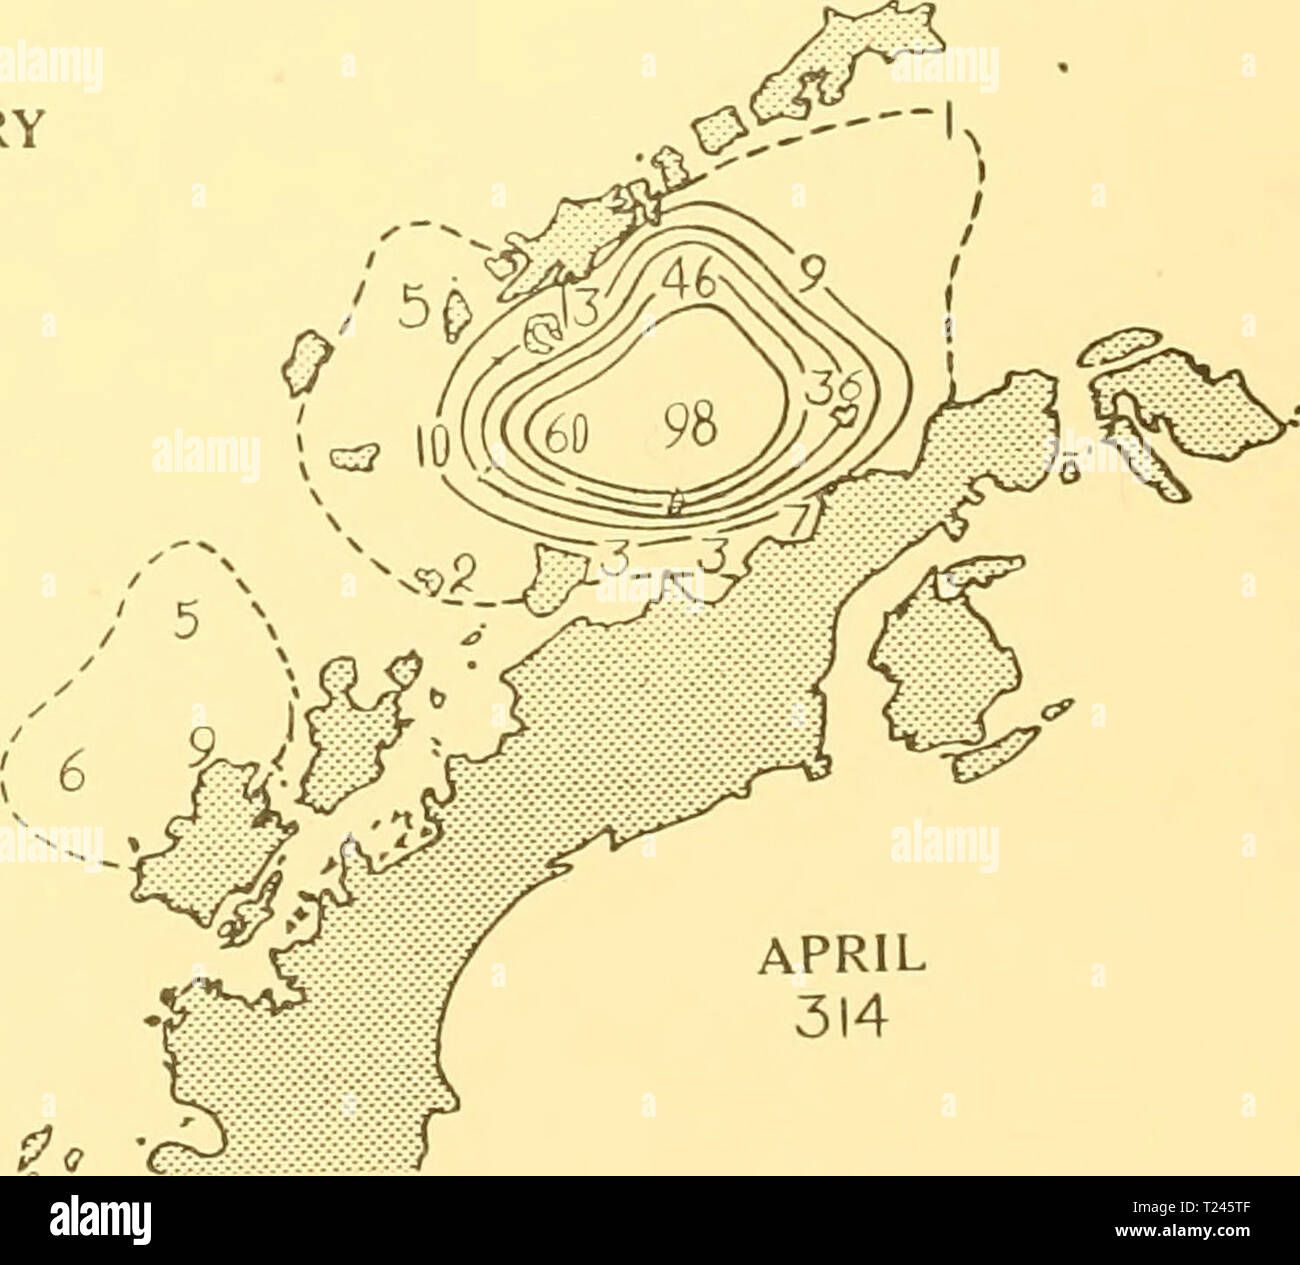 Archive image from page 251 of Discovery reports (1932) Discovery reports  discoveryreports06inst Year: 1932  APRIL 314 SCALE OF NAUTICAL MILES. MARCH 365  100 200 Distribution of Fin whales taken on the South Shetland grounds in season 1924-5 300 - Stock Image